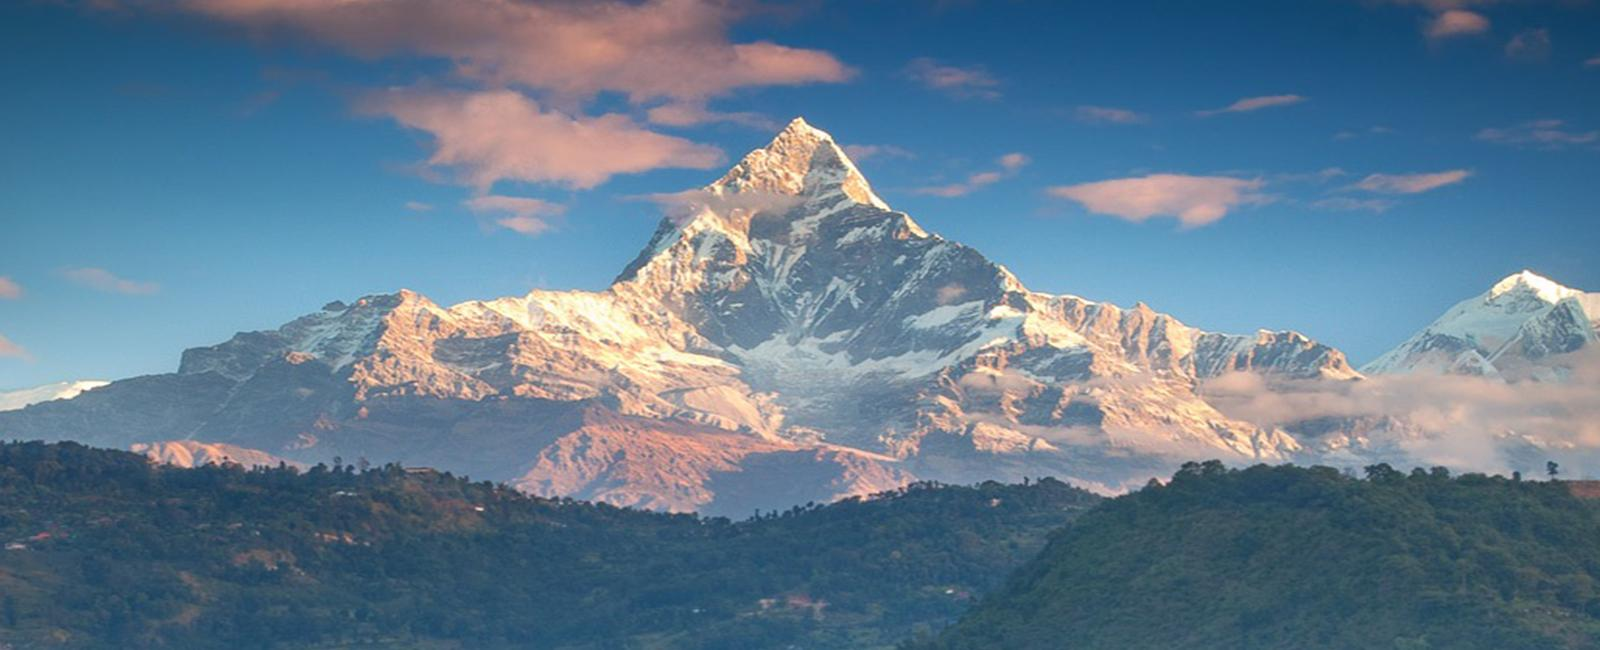 Annapurna mountain View From Pokhara